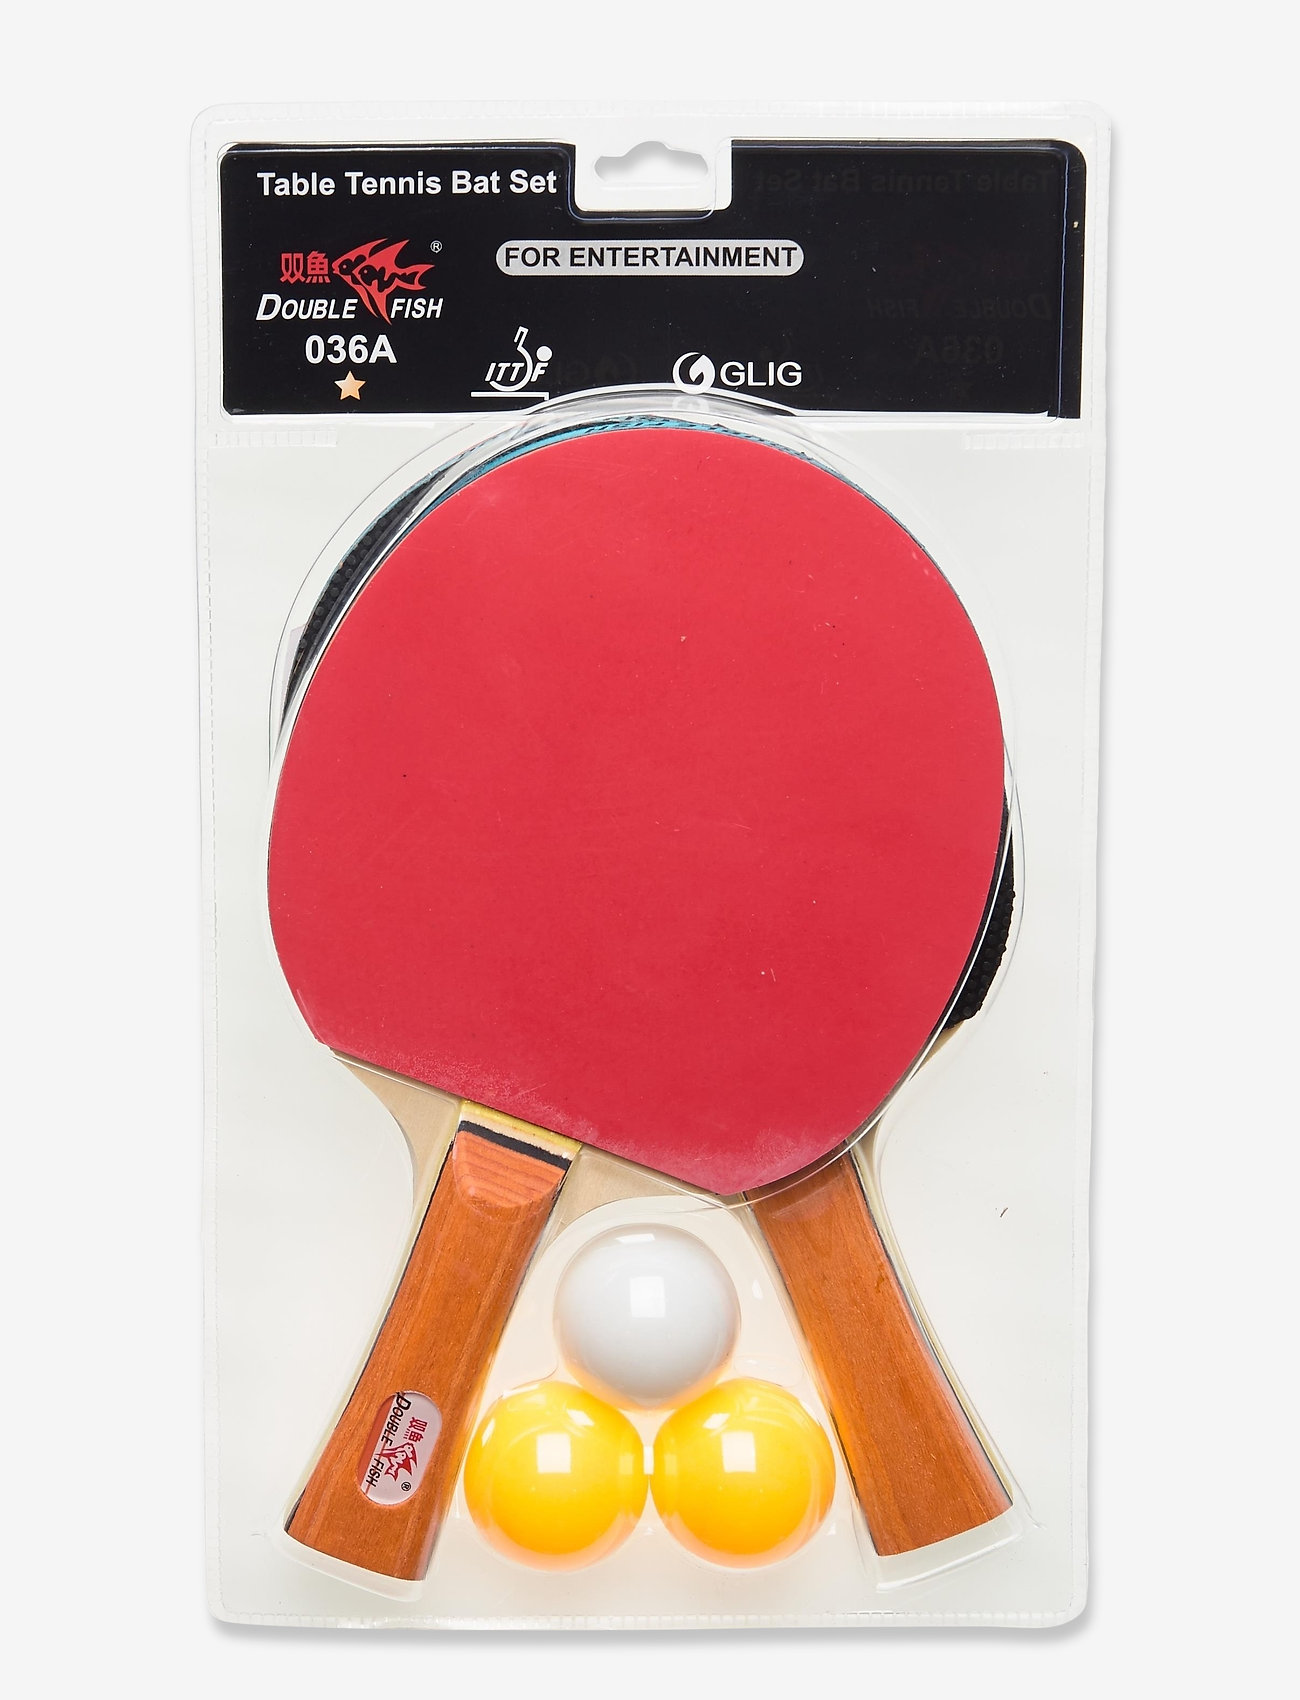 Double Fish - 036A Table Tennis Set - tischtennisschläger - 1001 black - 1